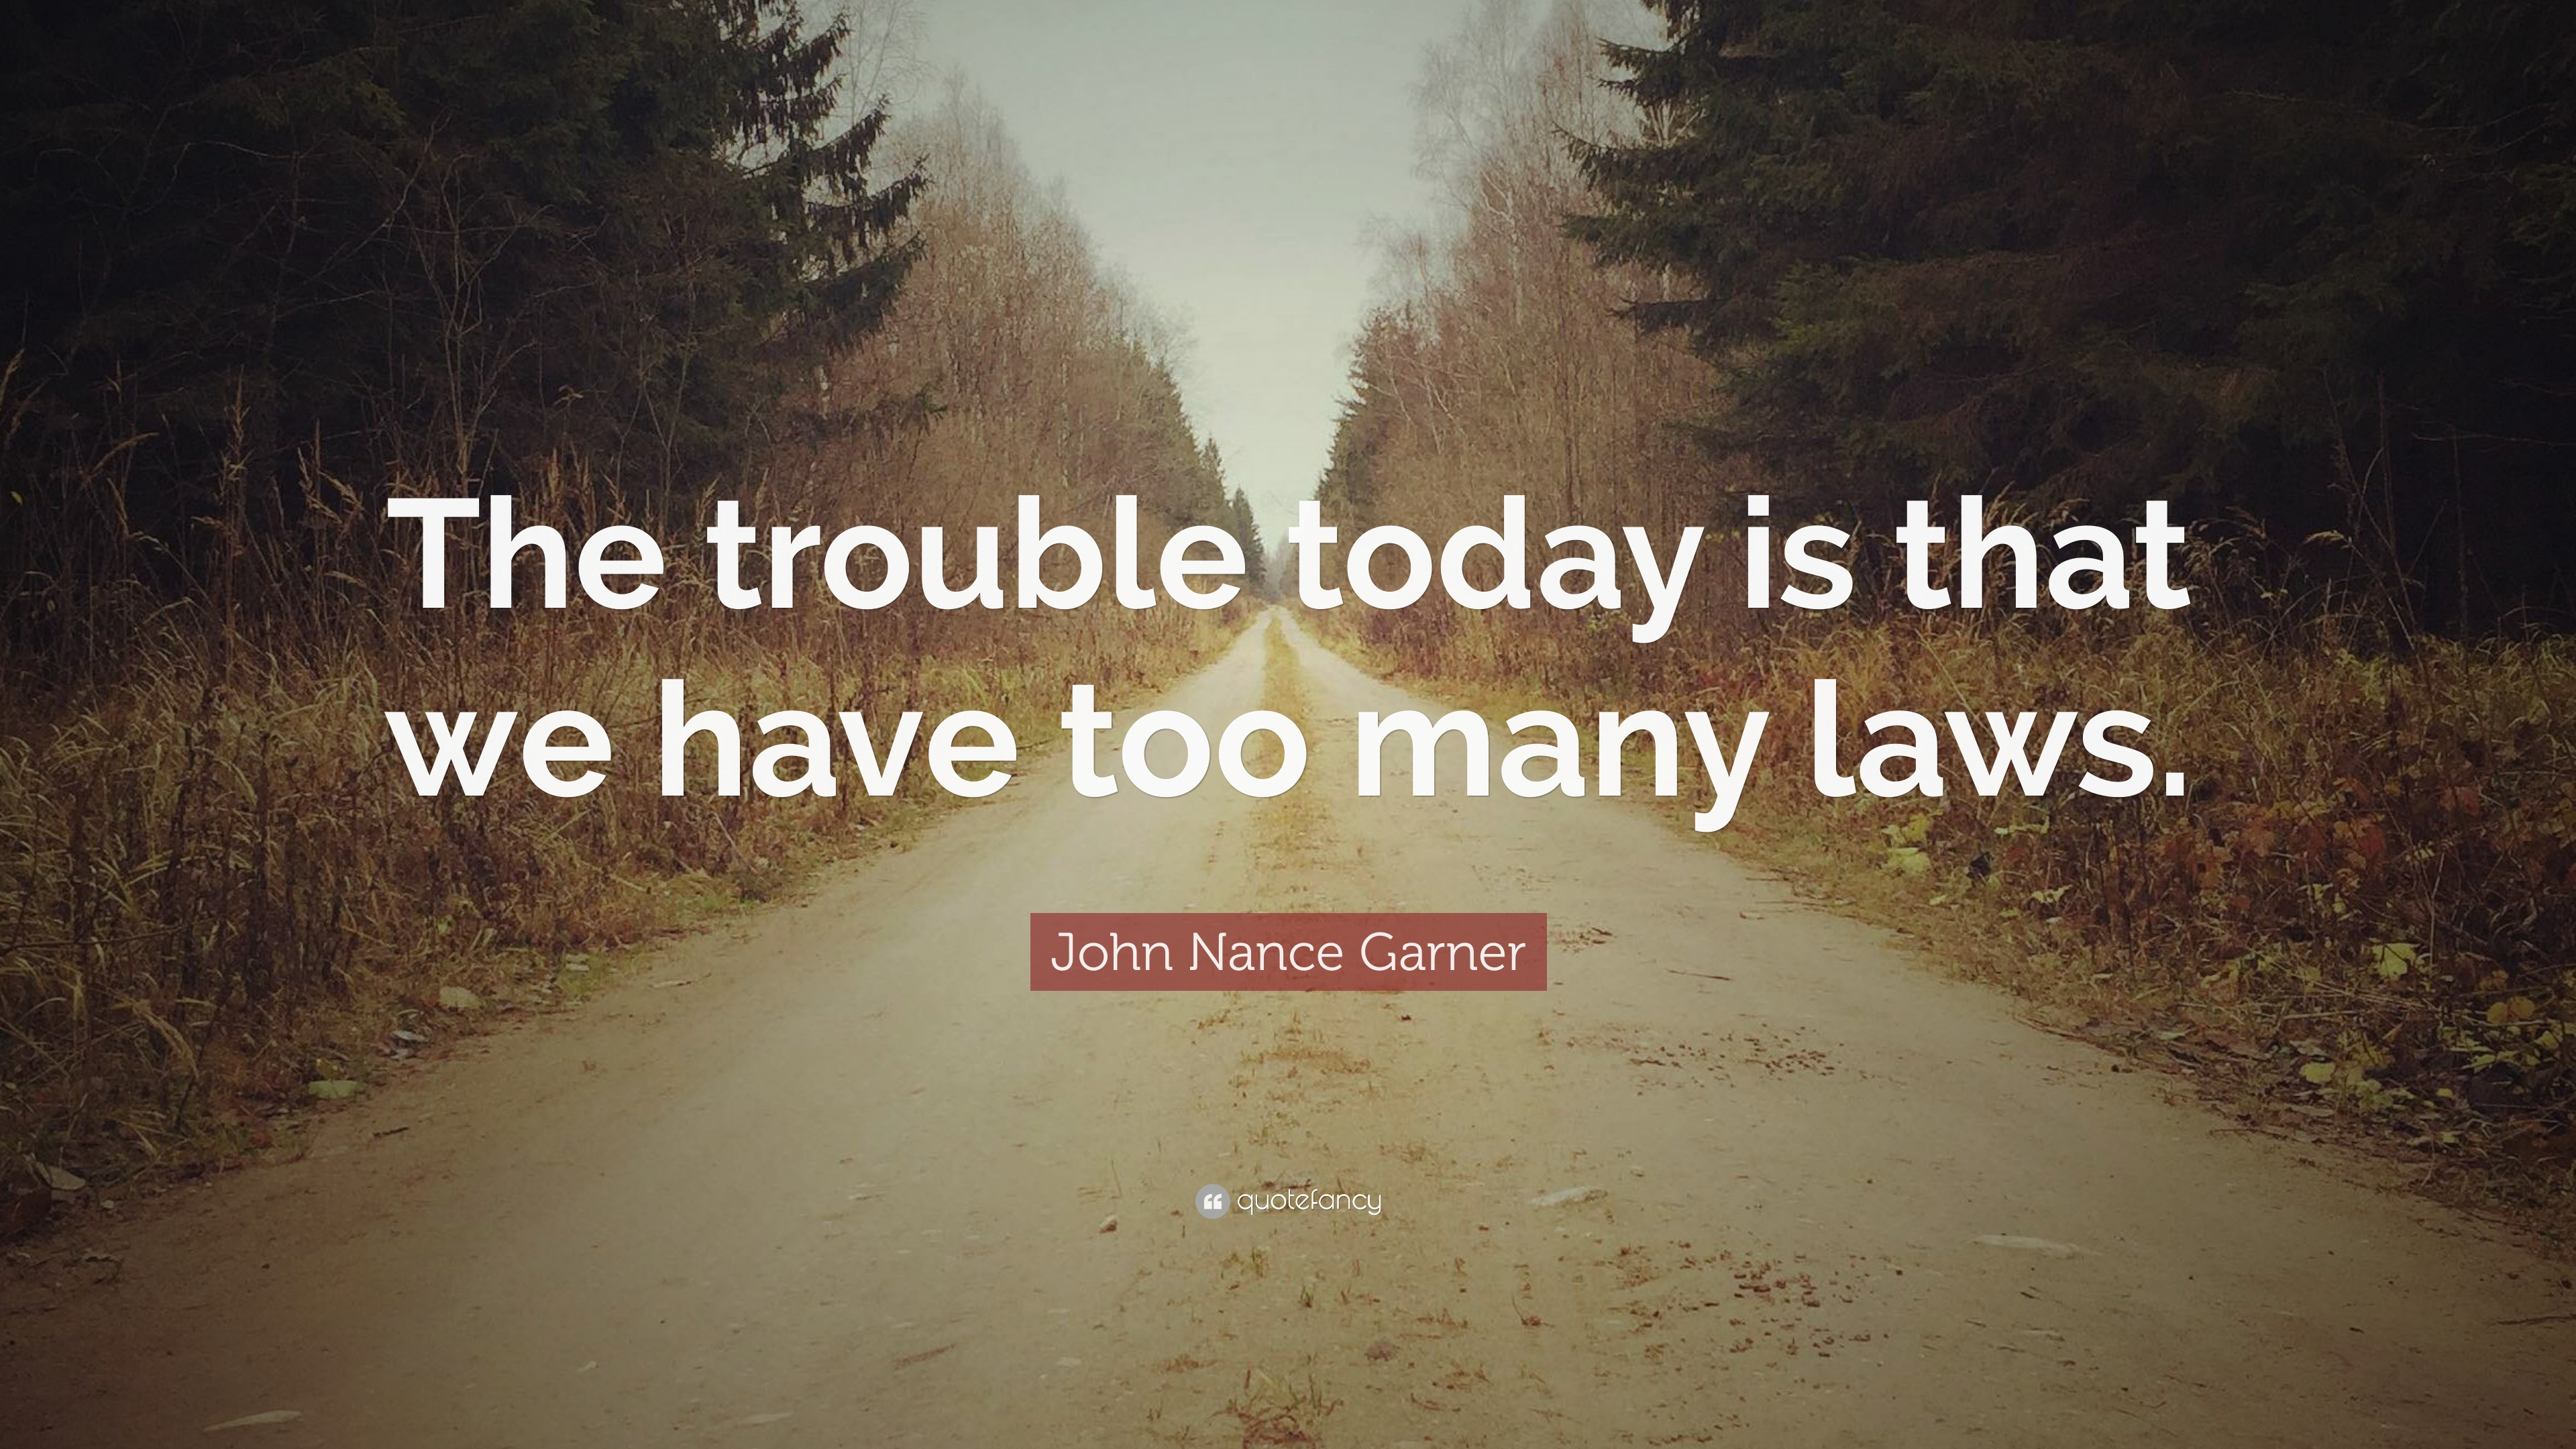 1544745-John-Nance-Garner-Quote-The-trouble-today-is-that-we-have-too-many.jpg